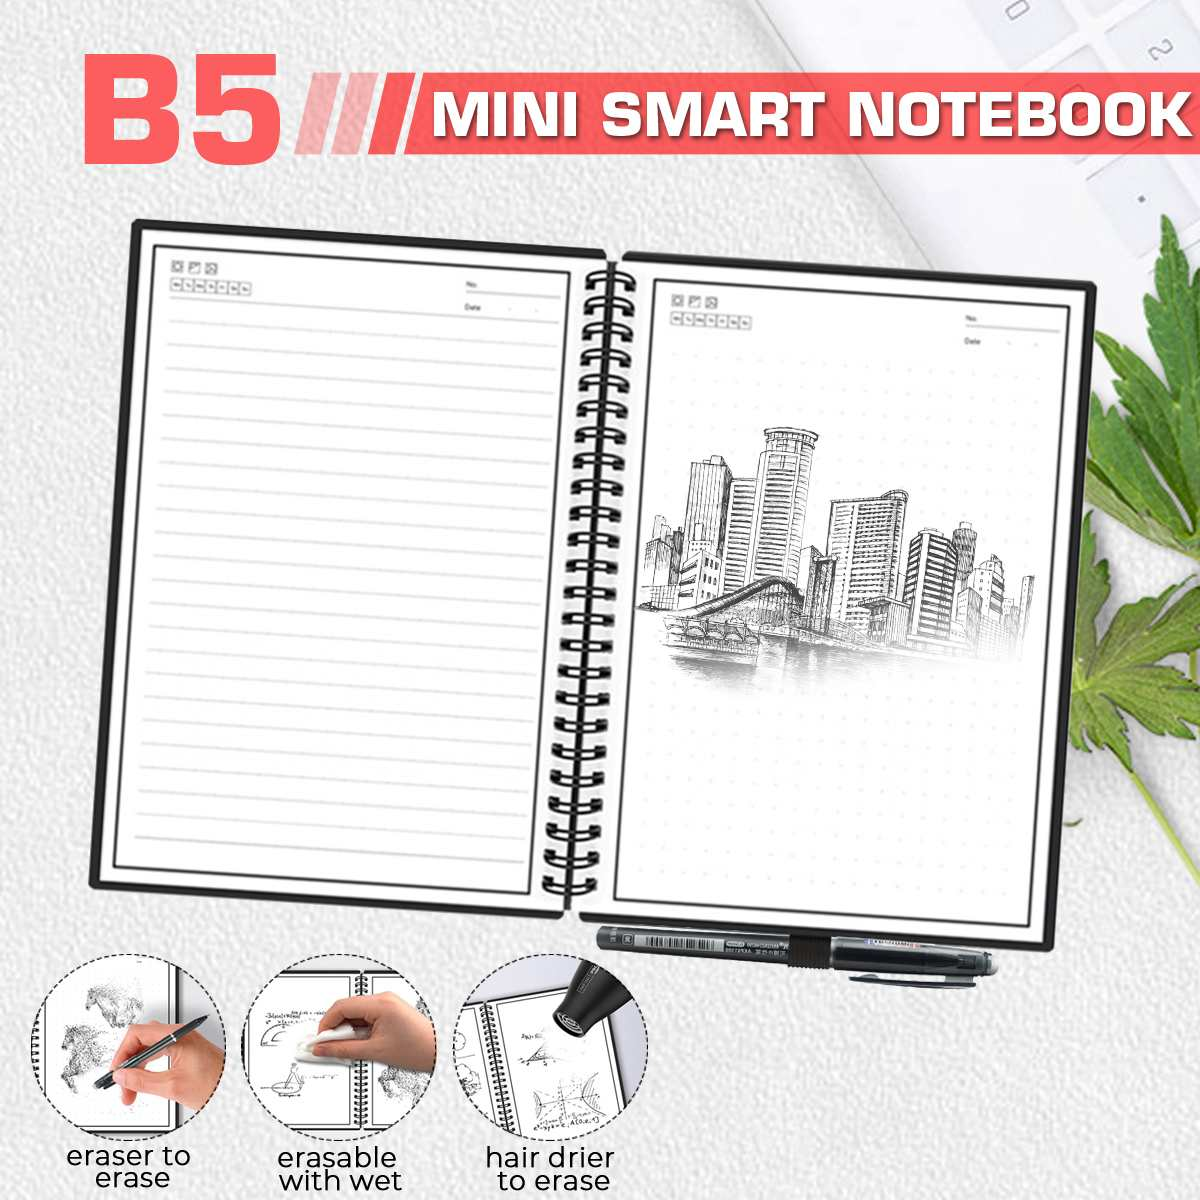 B5 Smart Reusable <font><b>Notebook</b></font> Erasable Wirebound <font><b>Notebook</b></font> Cloud Storage App Paperless Waterproof Hardcover Diary Book Gifts image